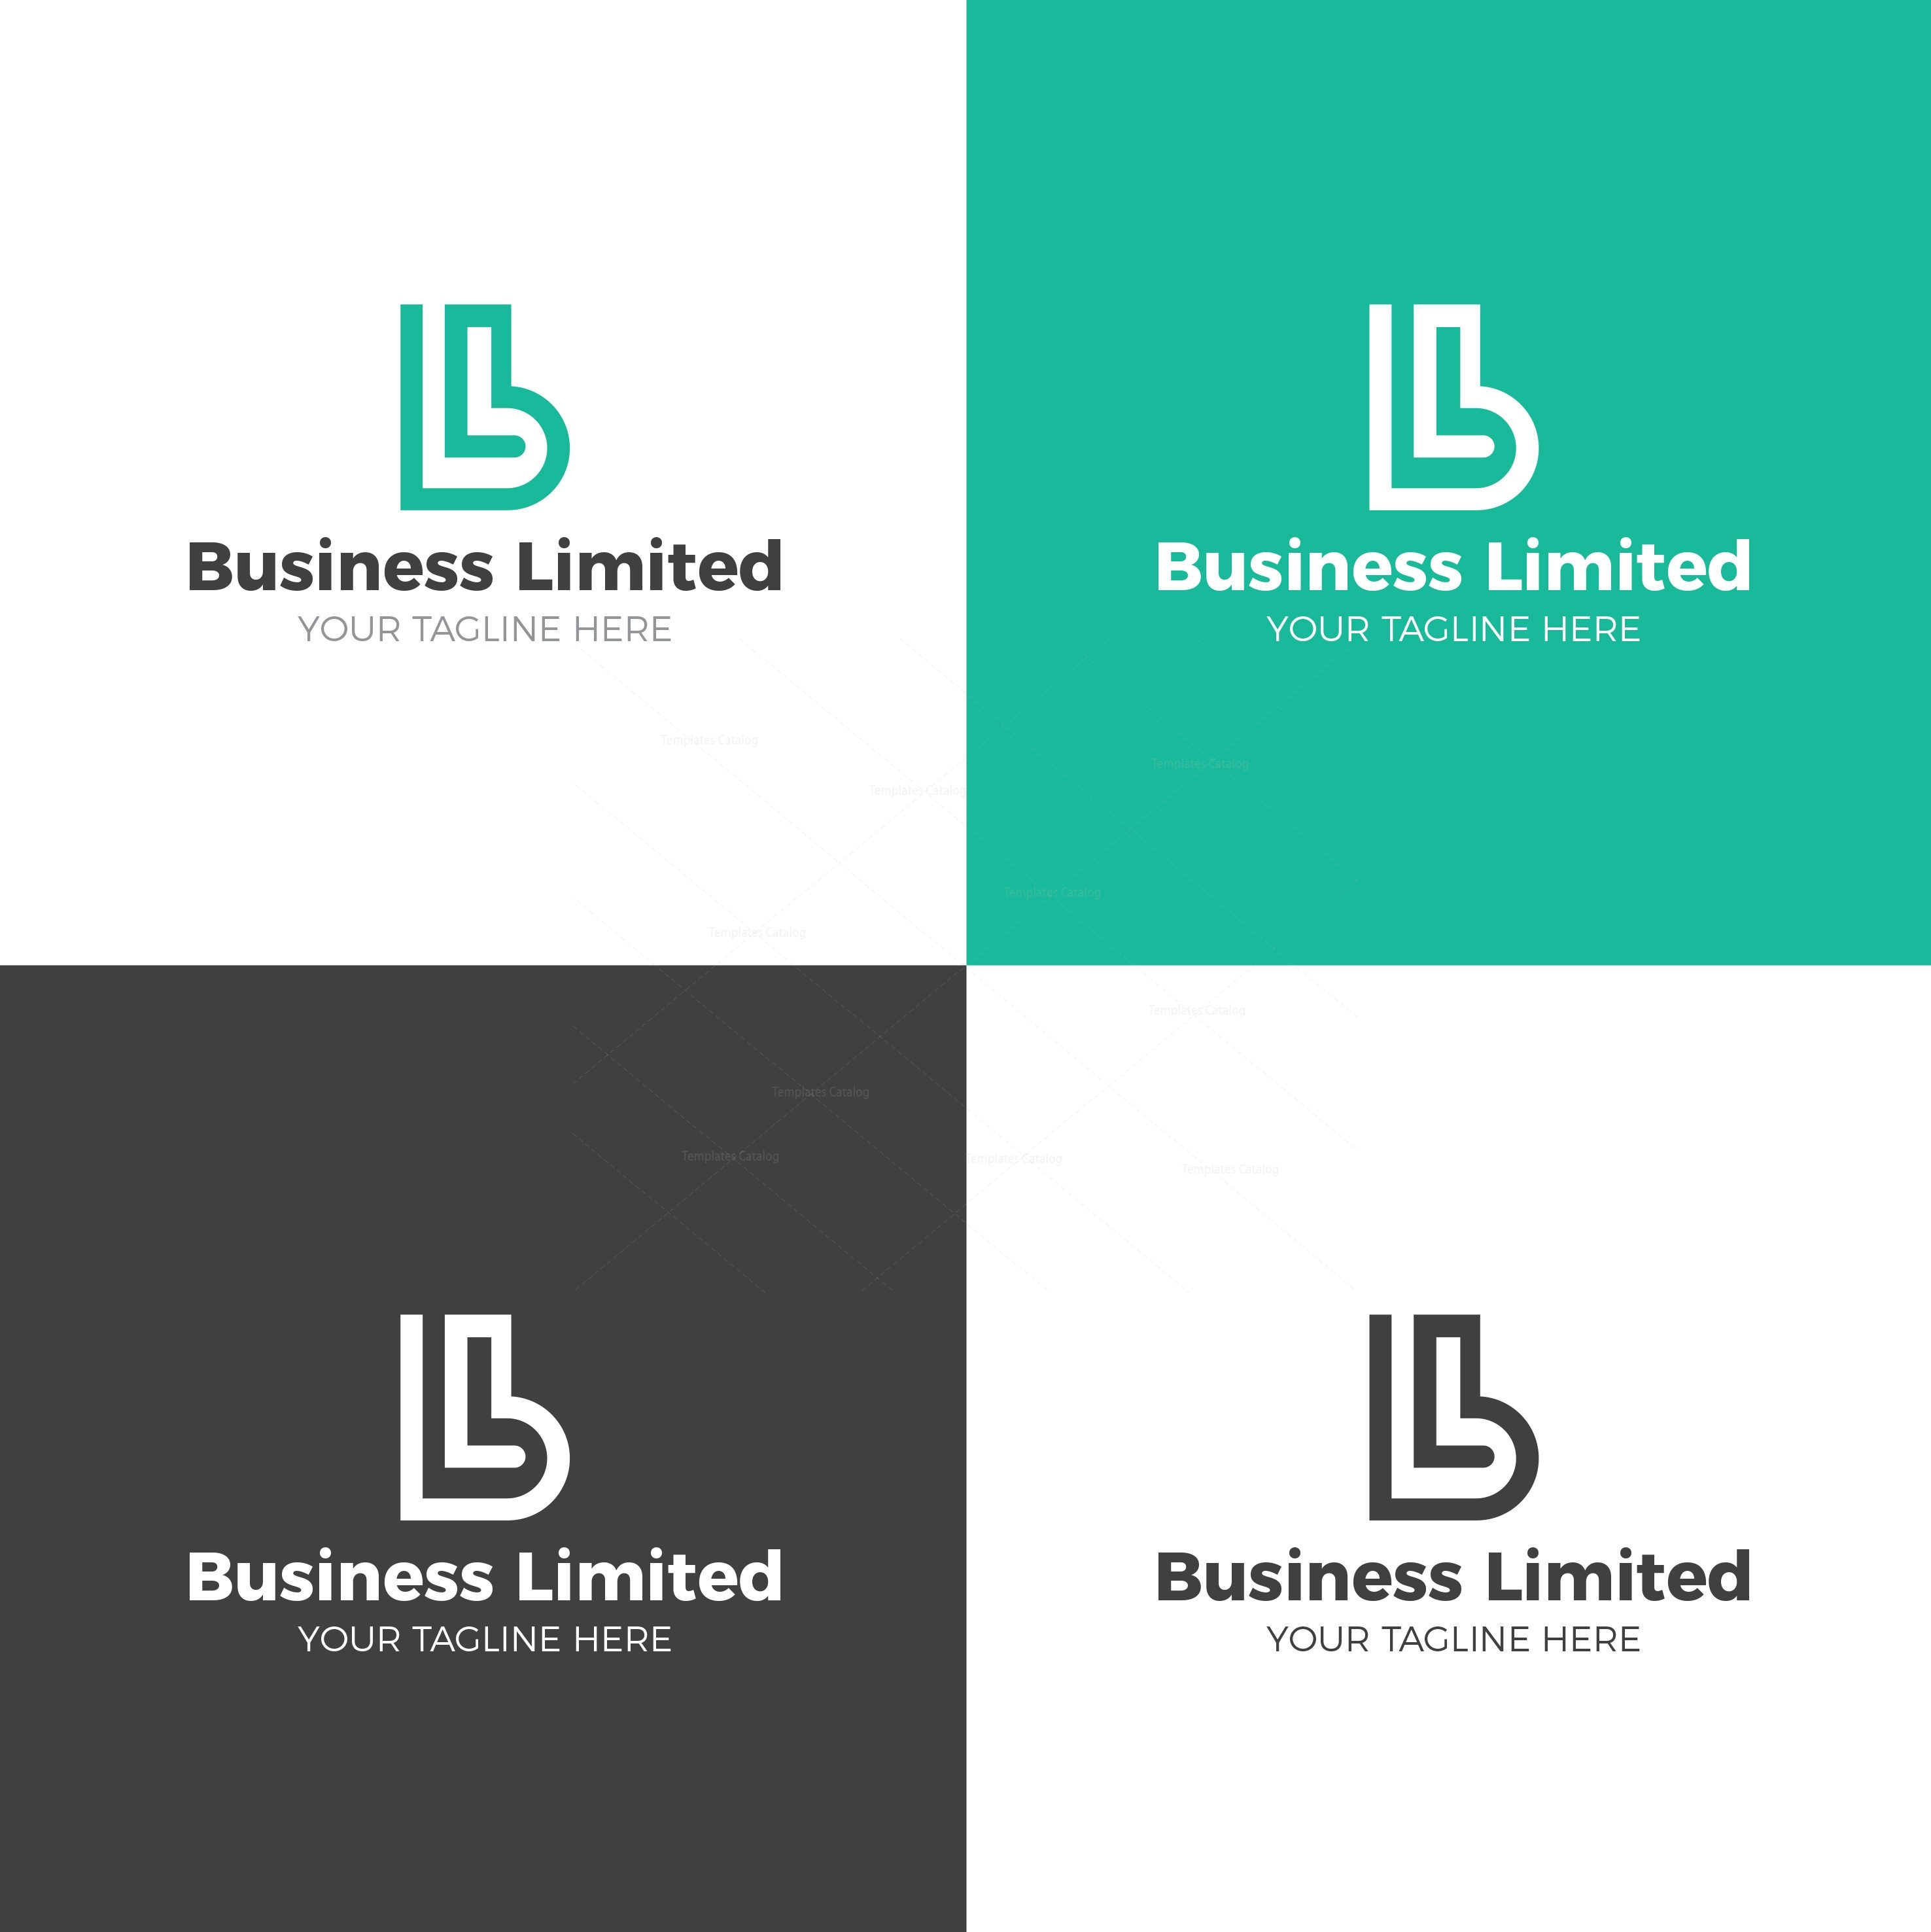 Business limited creative logo design template 001889 template catalog business limited creative logo design template wajeb Image collections